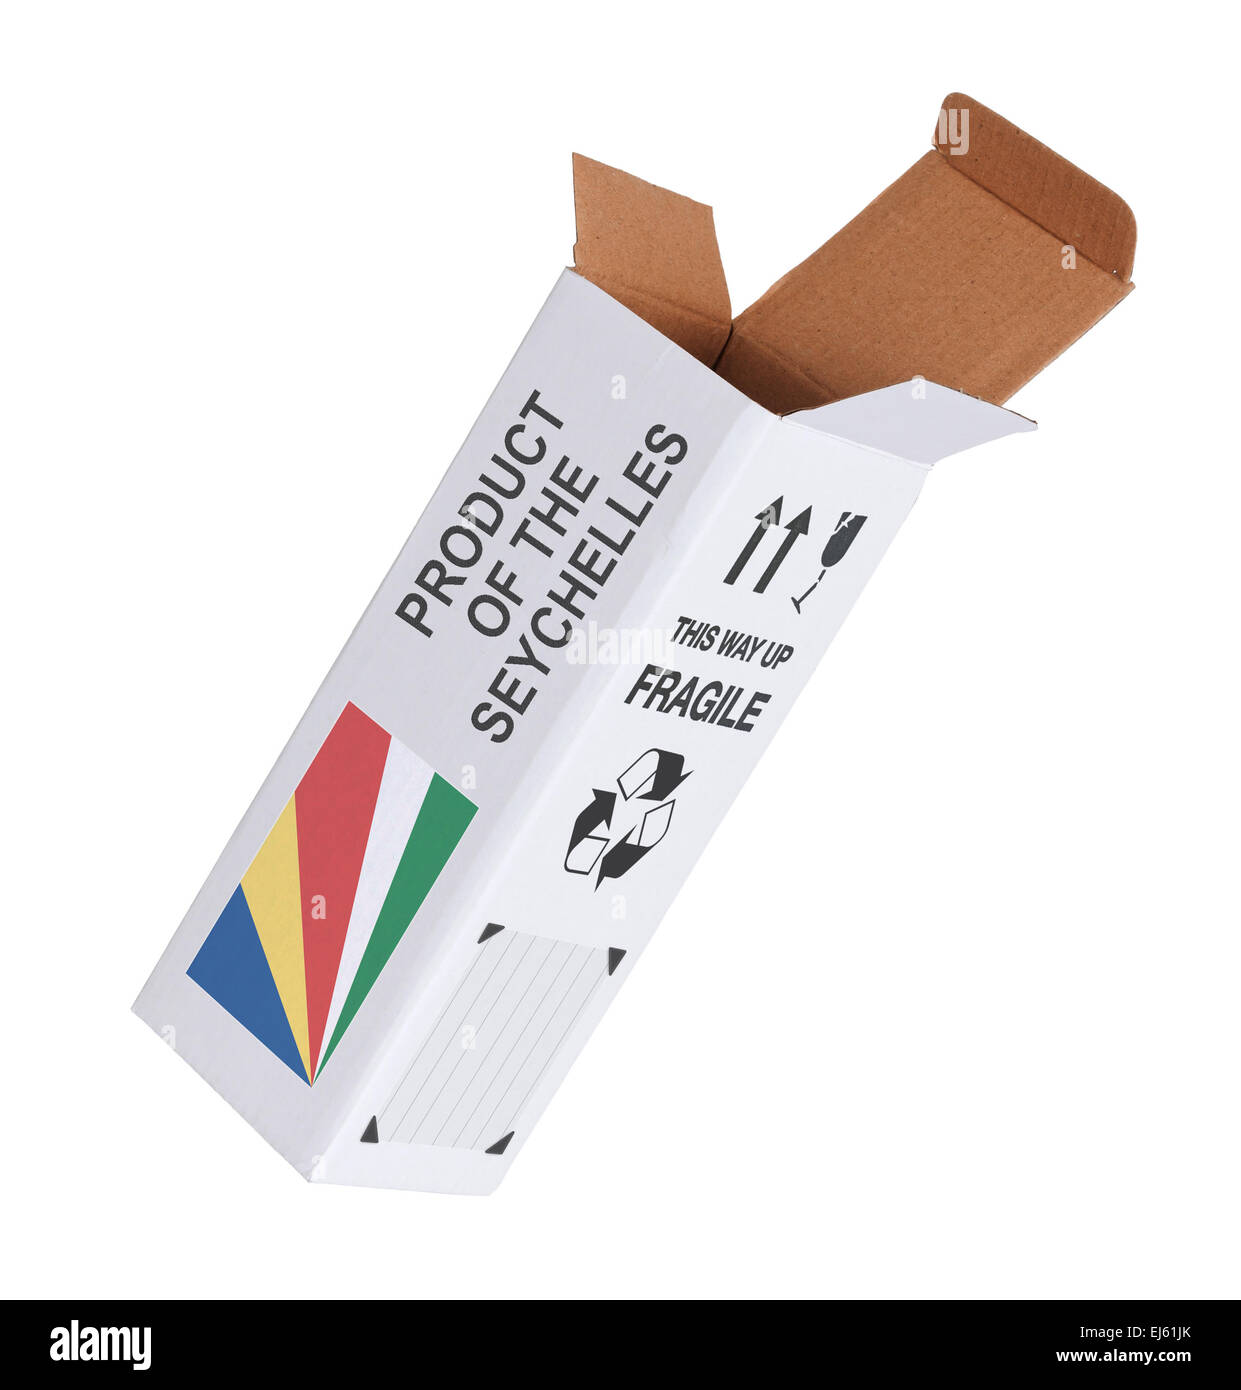 Concept of export, opened paper box - Product of the Seychelles - Stock Image